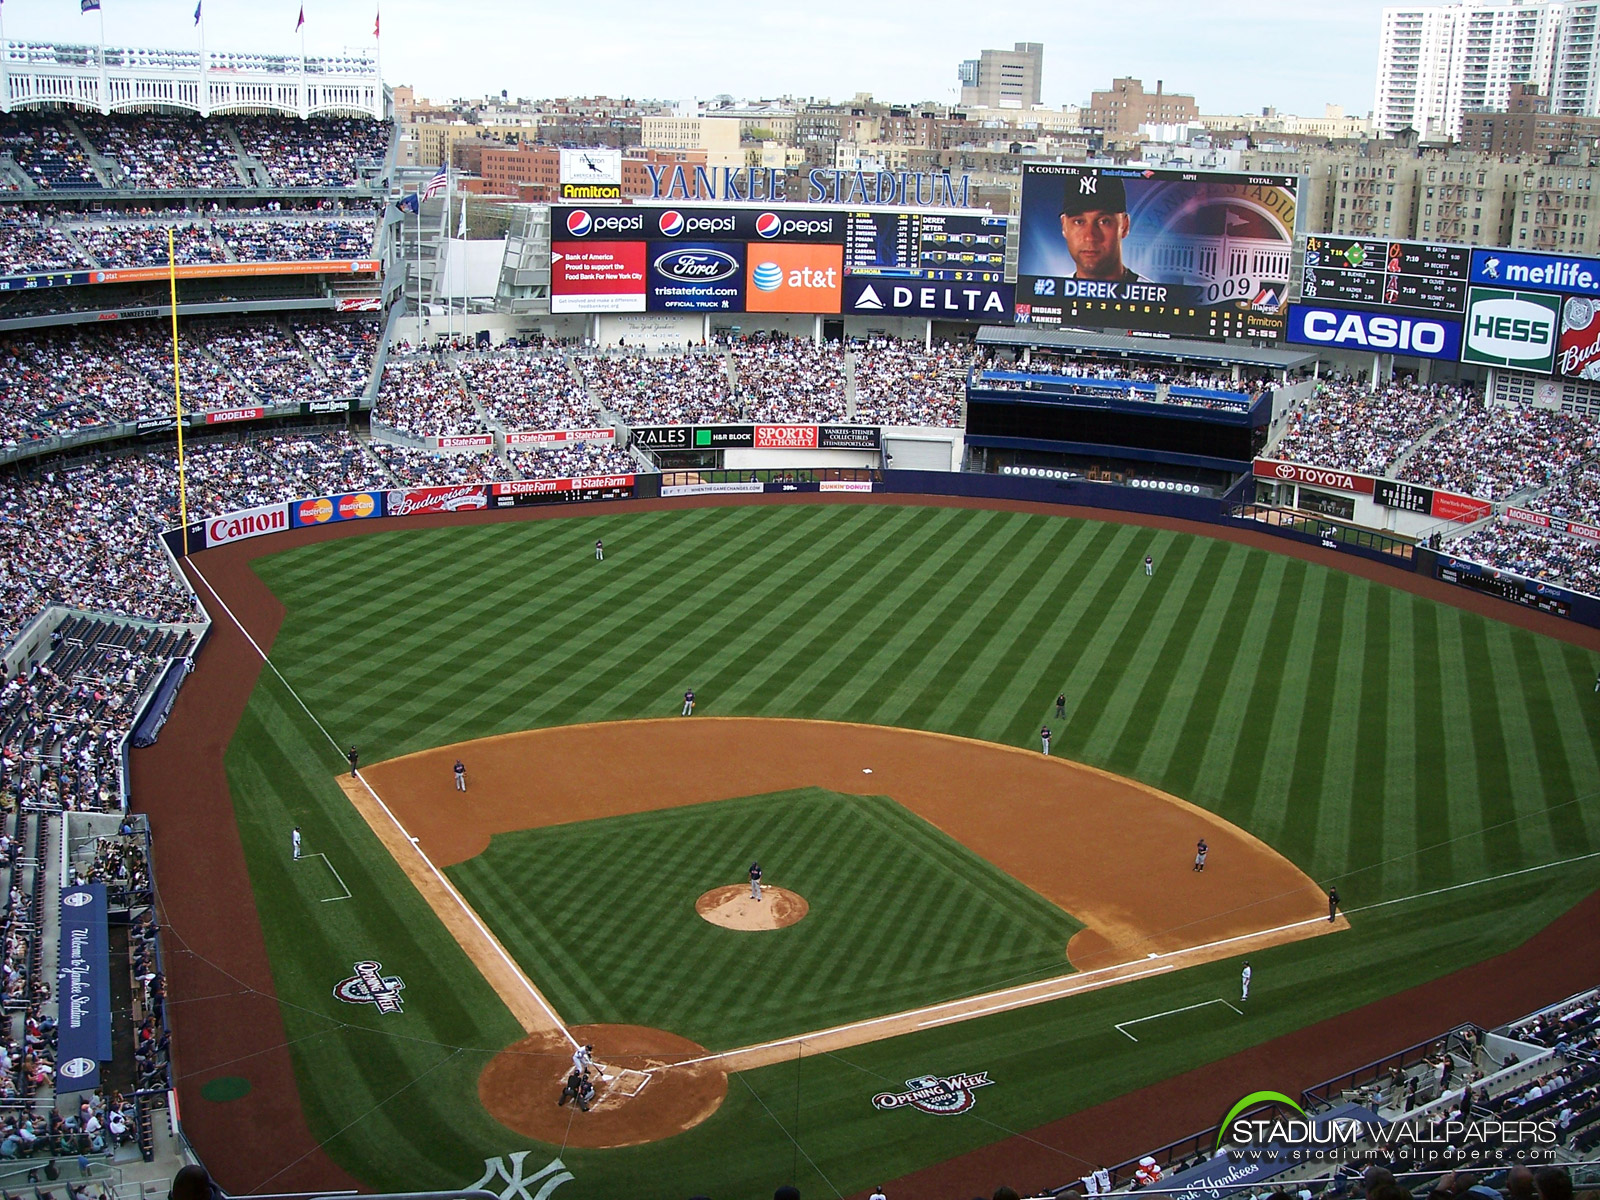 http://4.bp.blogspot.com/-dCQyeP4Hvbw/TpAdyI-K6NI/AAAAAAAACYE/TFKntjOOXBk/s1600/HD%20The-best-top-desktop-baseball-wallpapers%20new-yankee-stadium-wallpaper.jpg